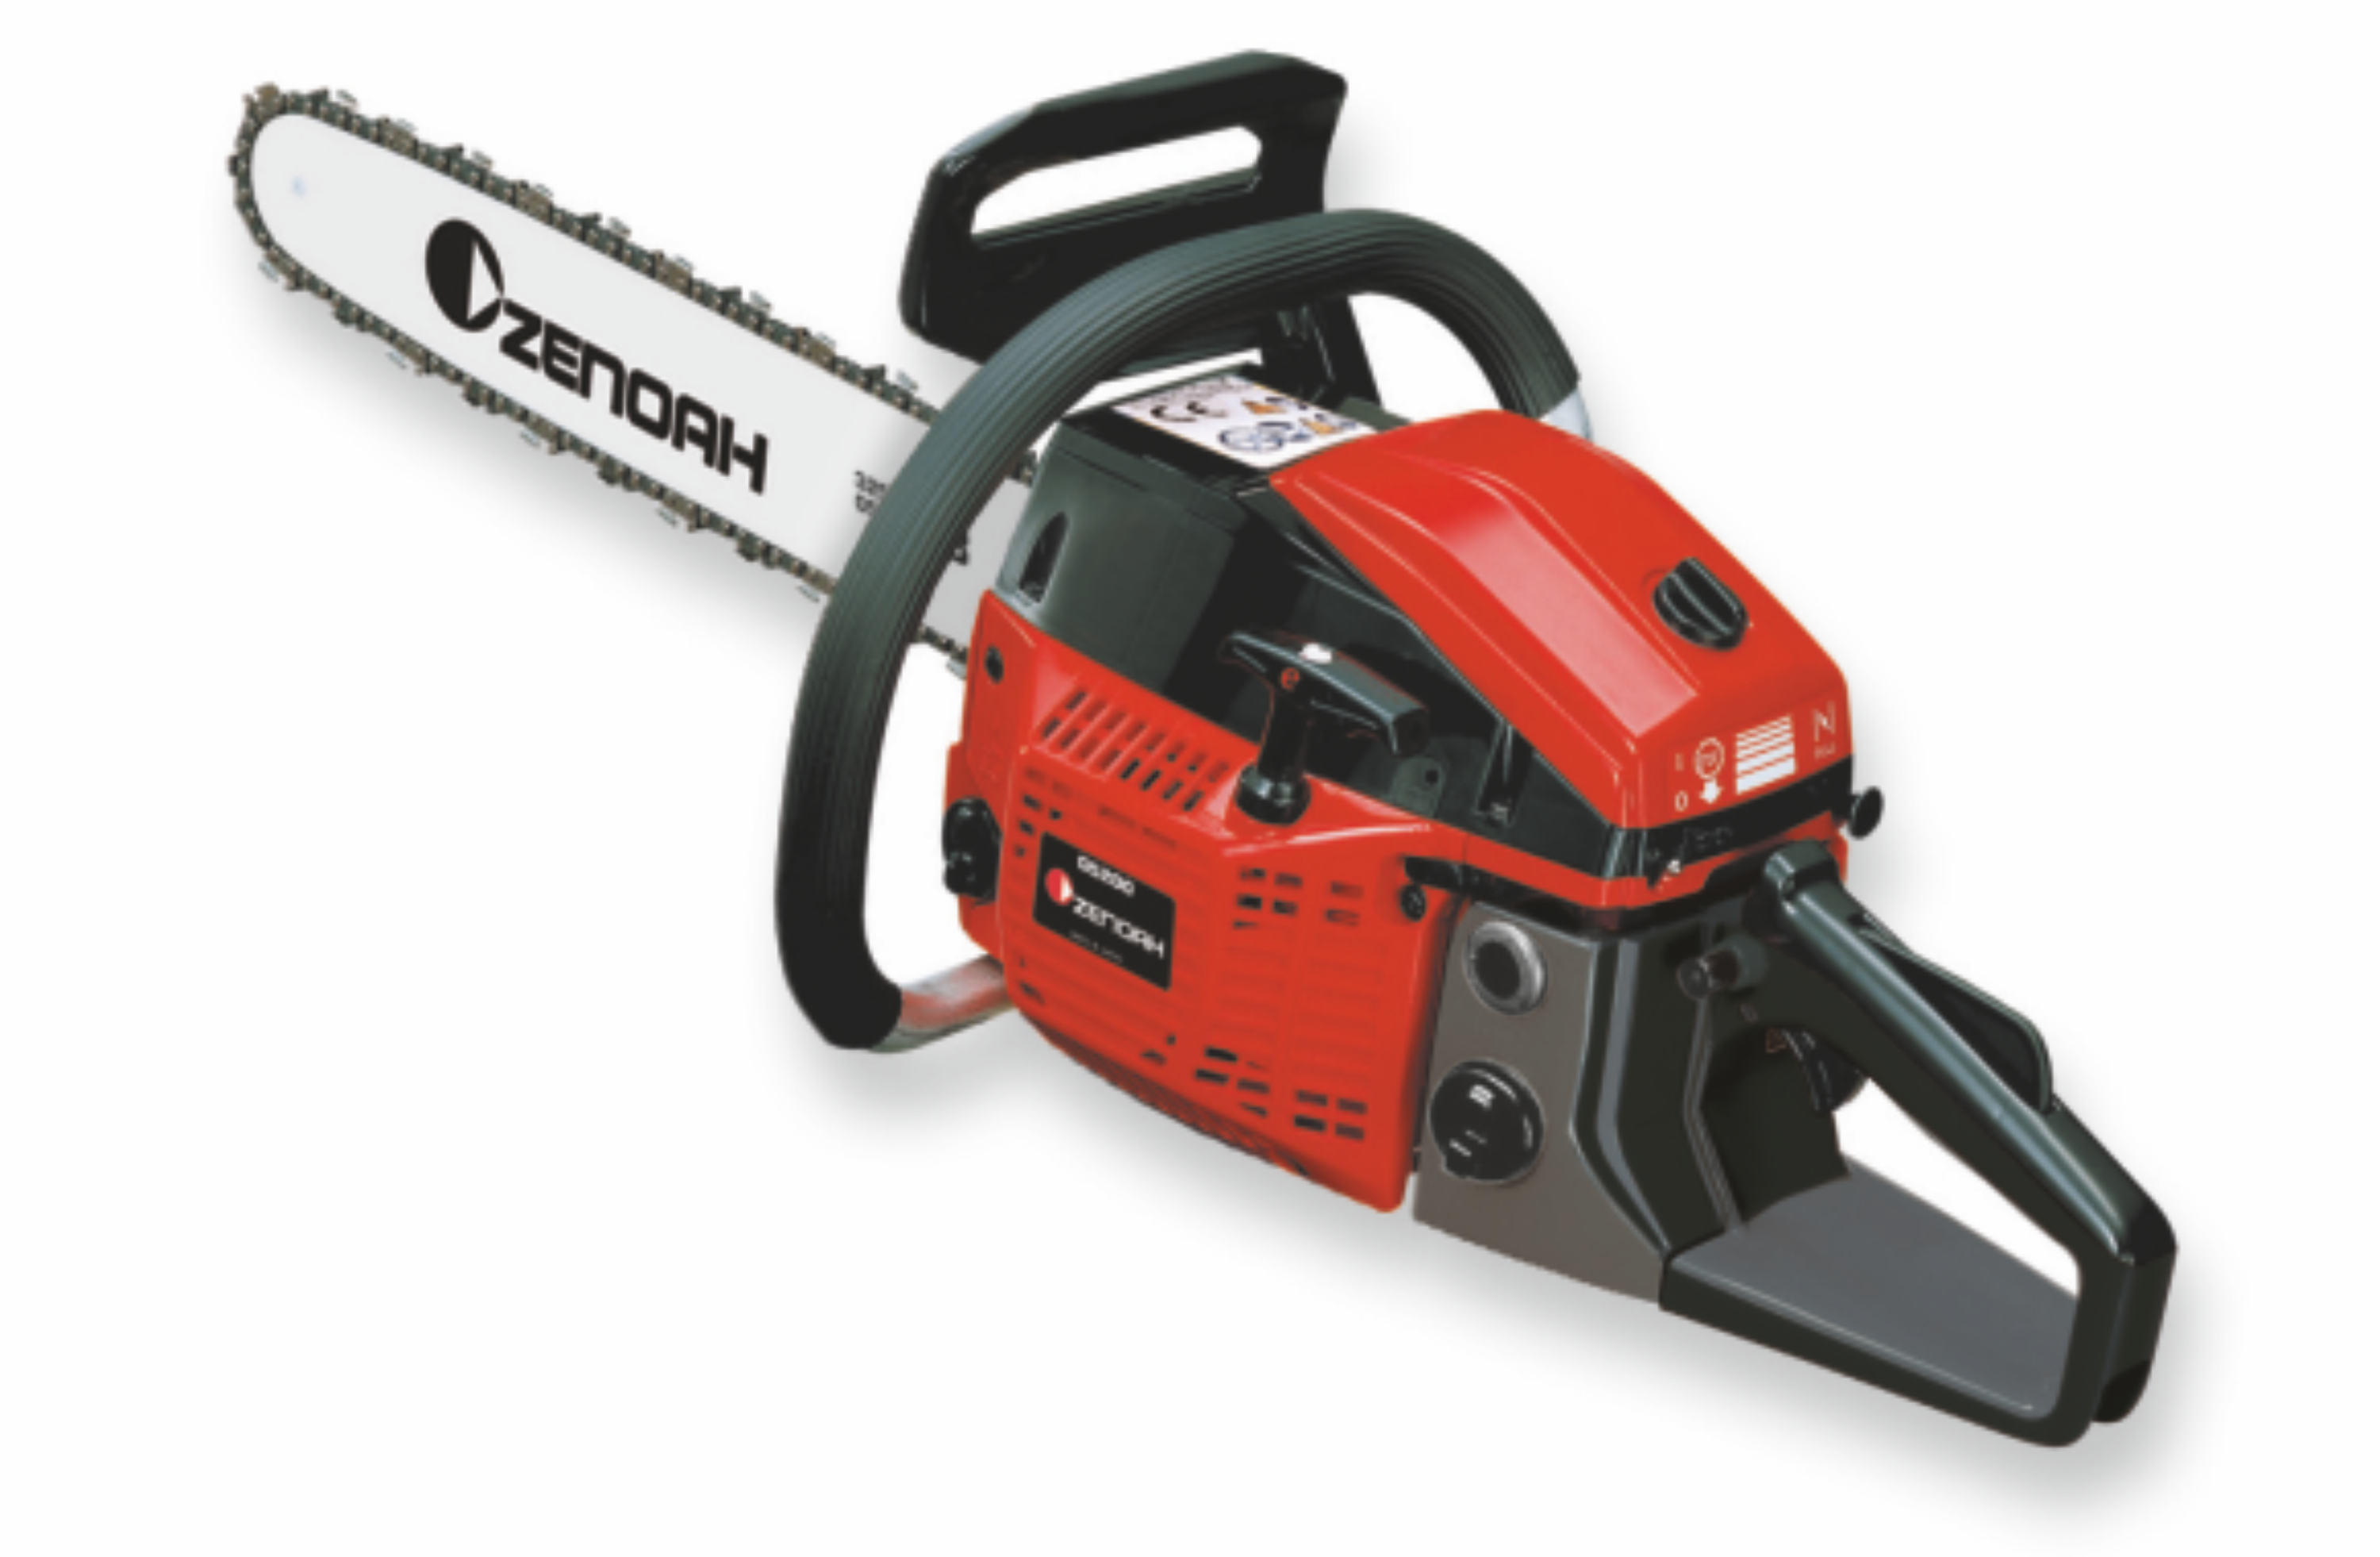 FALCON ZENOAH CHAINSAW G5000-20SP Displacement: 49 3 cc Power: 3 4